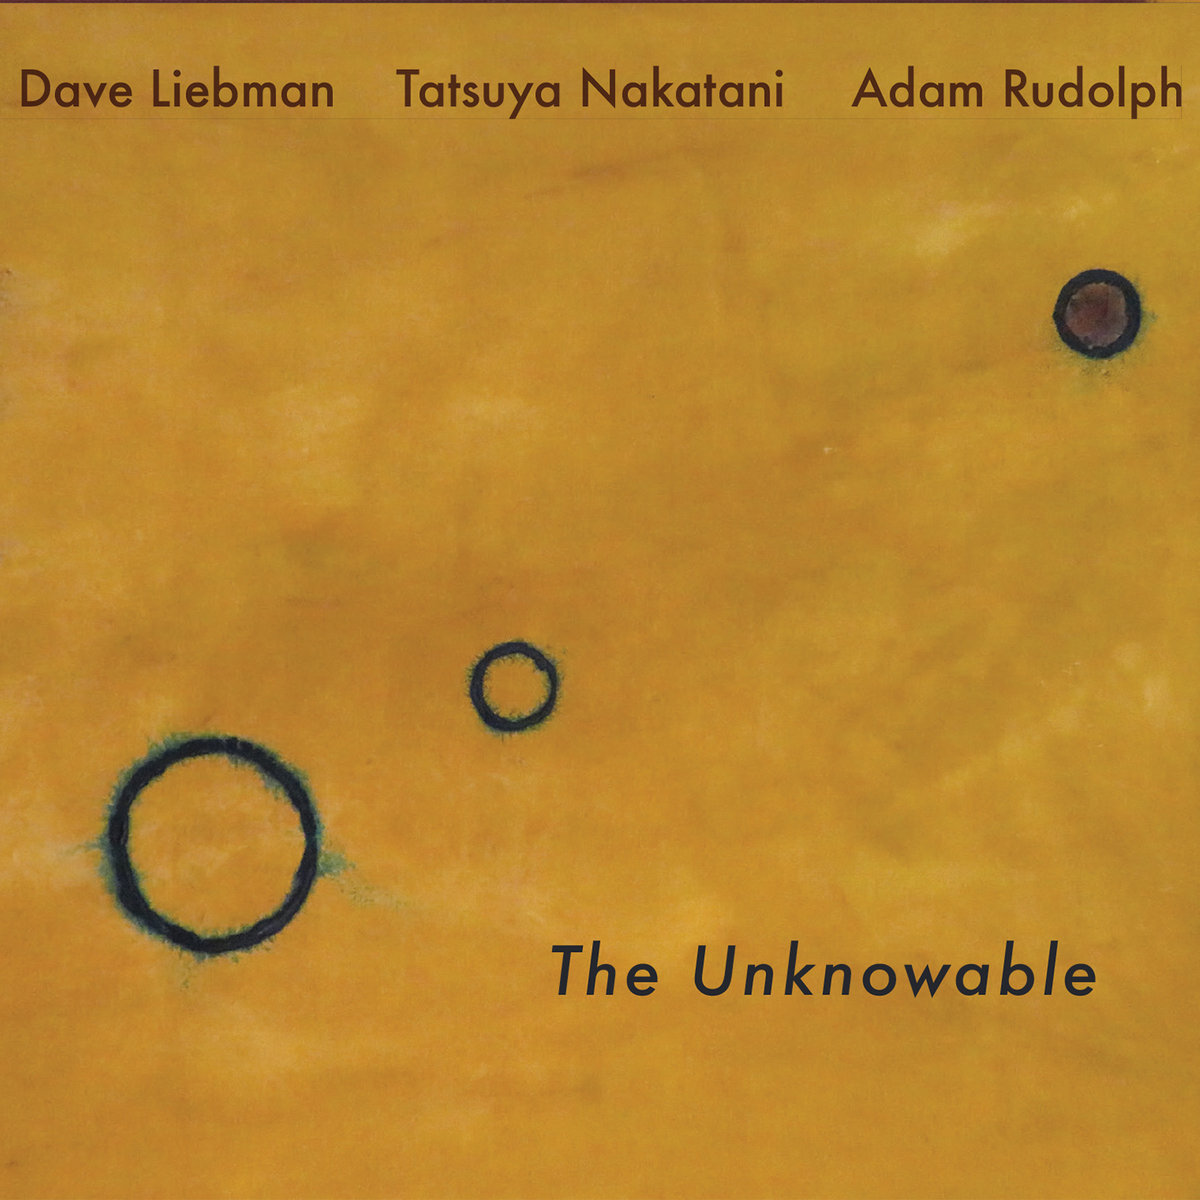 The Unknowable Adam Rudolph